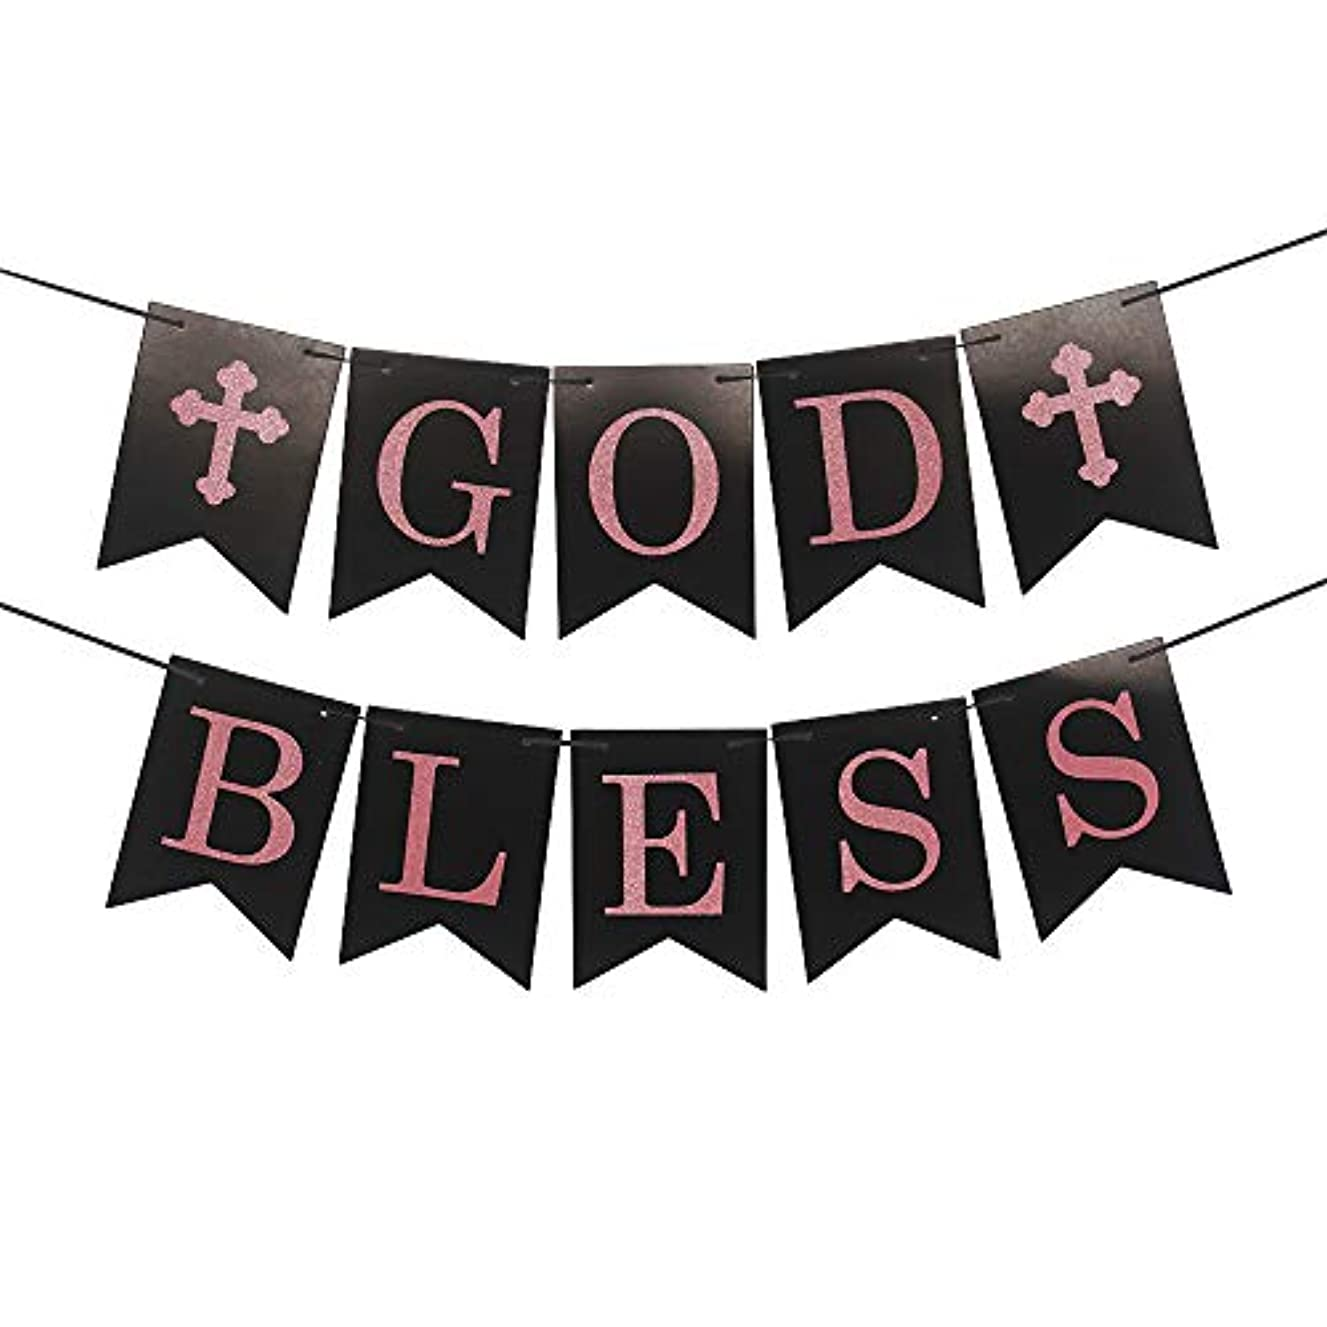 God Bless Banner Sign in Rose Gold Black for Christmas Graduation Family Party Decorations